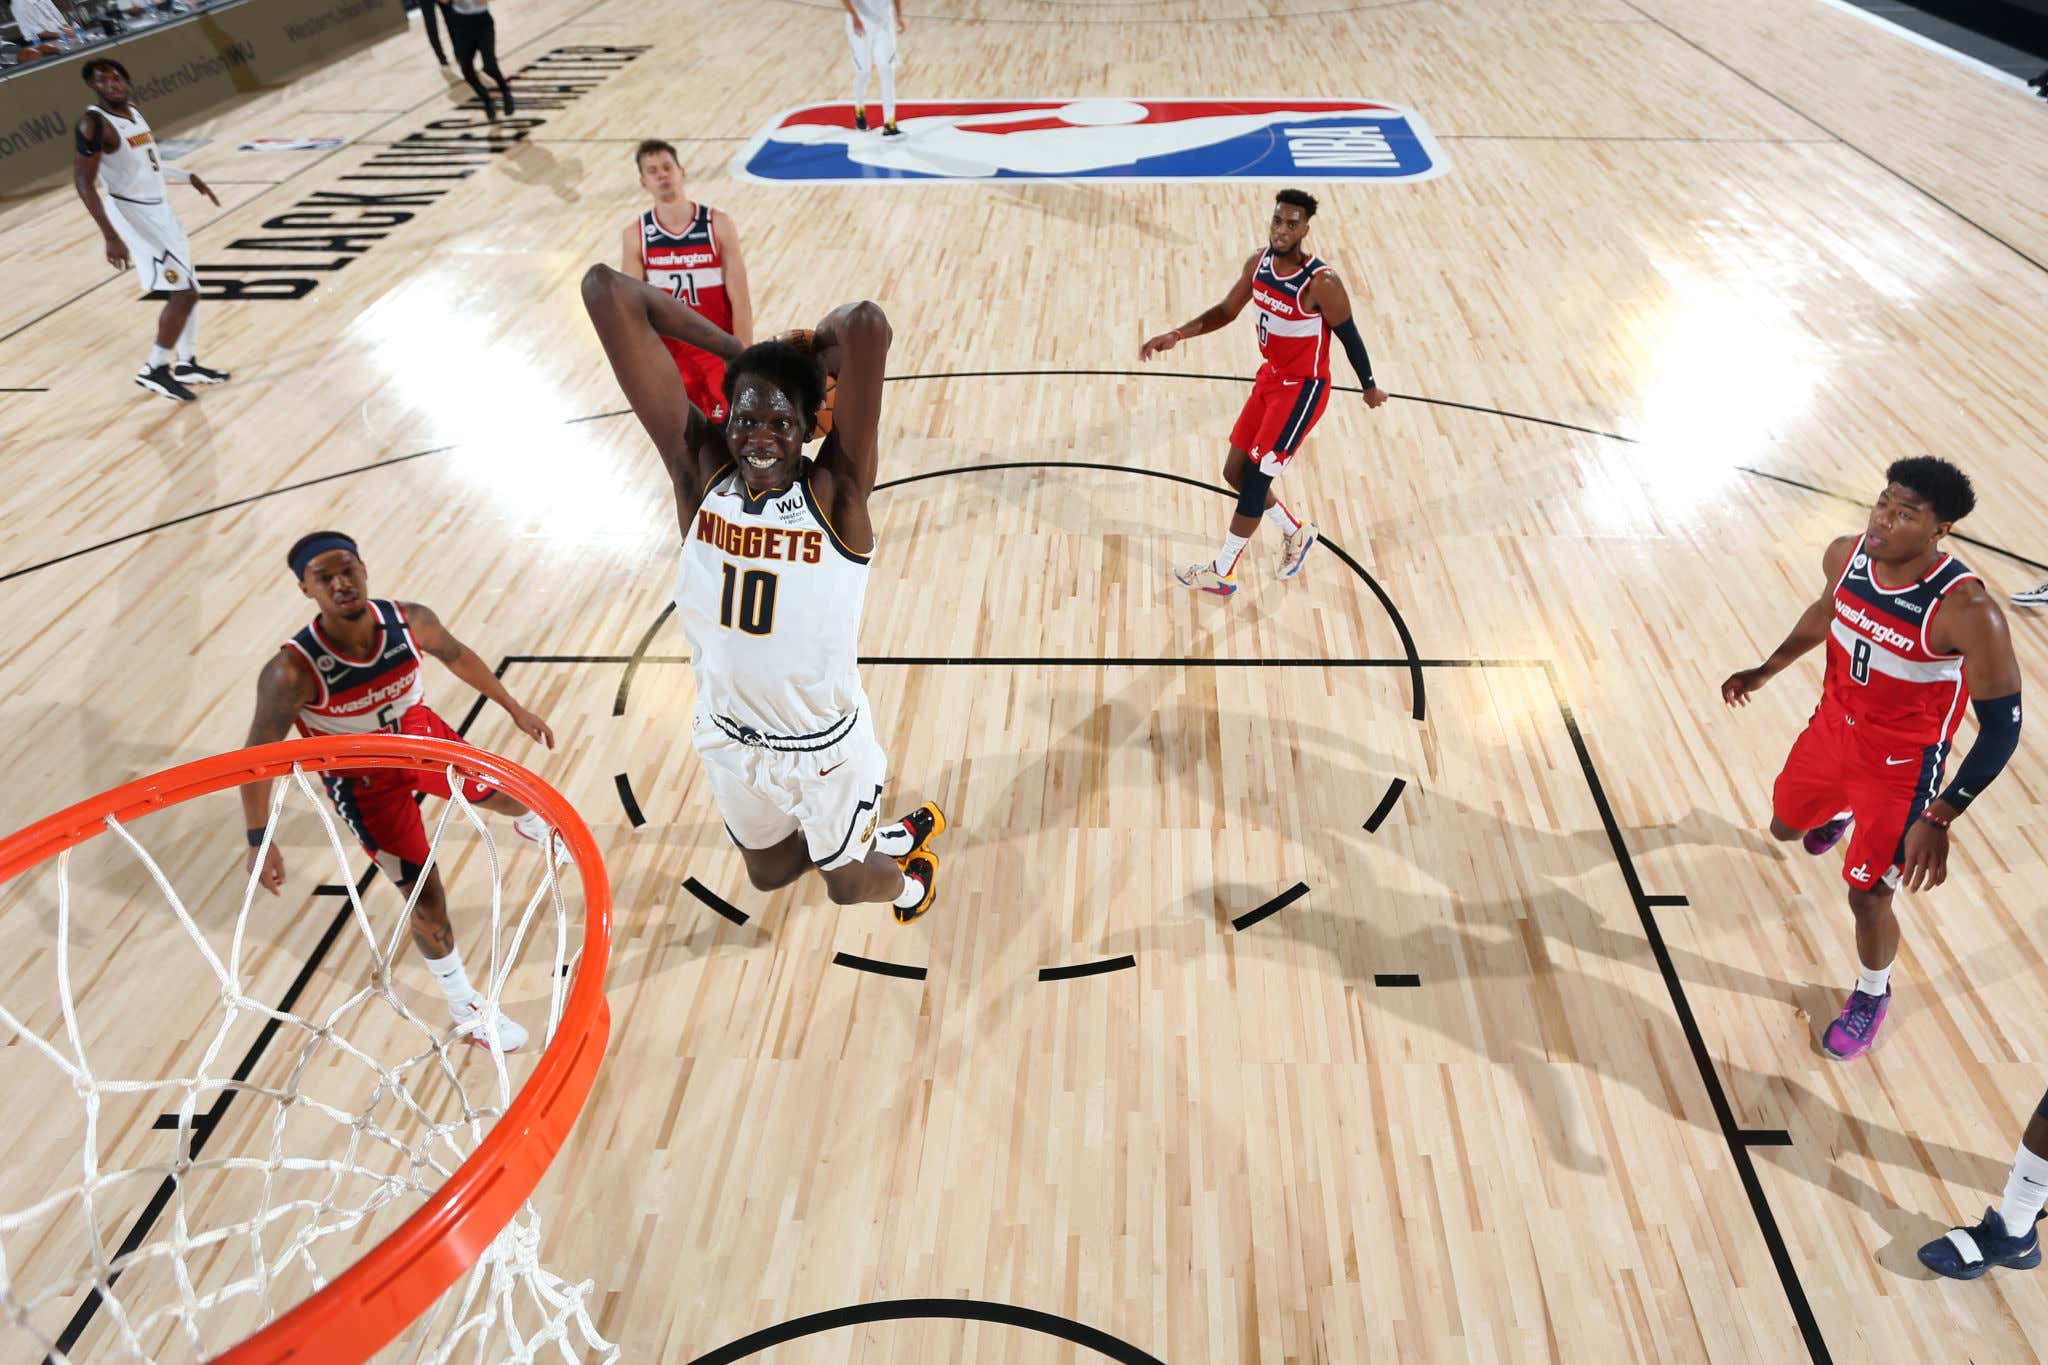 Orlando, FL - JULY 22: Bol Bol #10 of the Denver Nuggets drives to the basket against the Washington Wizards during a scrimmage on July 22, 2020 at The Arena at ESPN Wide World of Sports in Orlando, Florida. NOTE TO USER: User expressly acknowledges and agrees that, by downloading and/or using this Photograph, user is consenting to the terms and conditions of the Getty Images License Agreement. Mandatory Copyright Notice: Copyright 2020 NBAE (Photo by David Dow/NBAE via Getty Images)